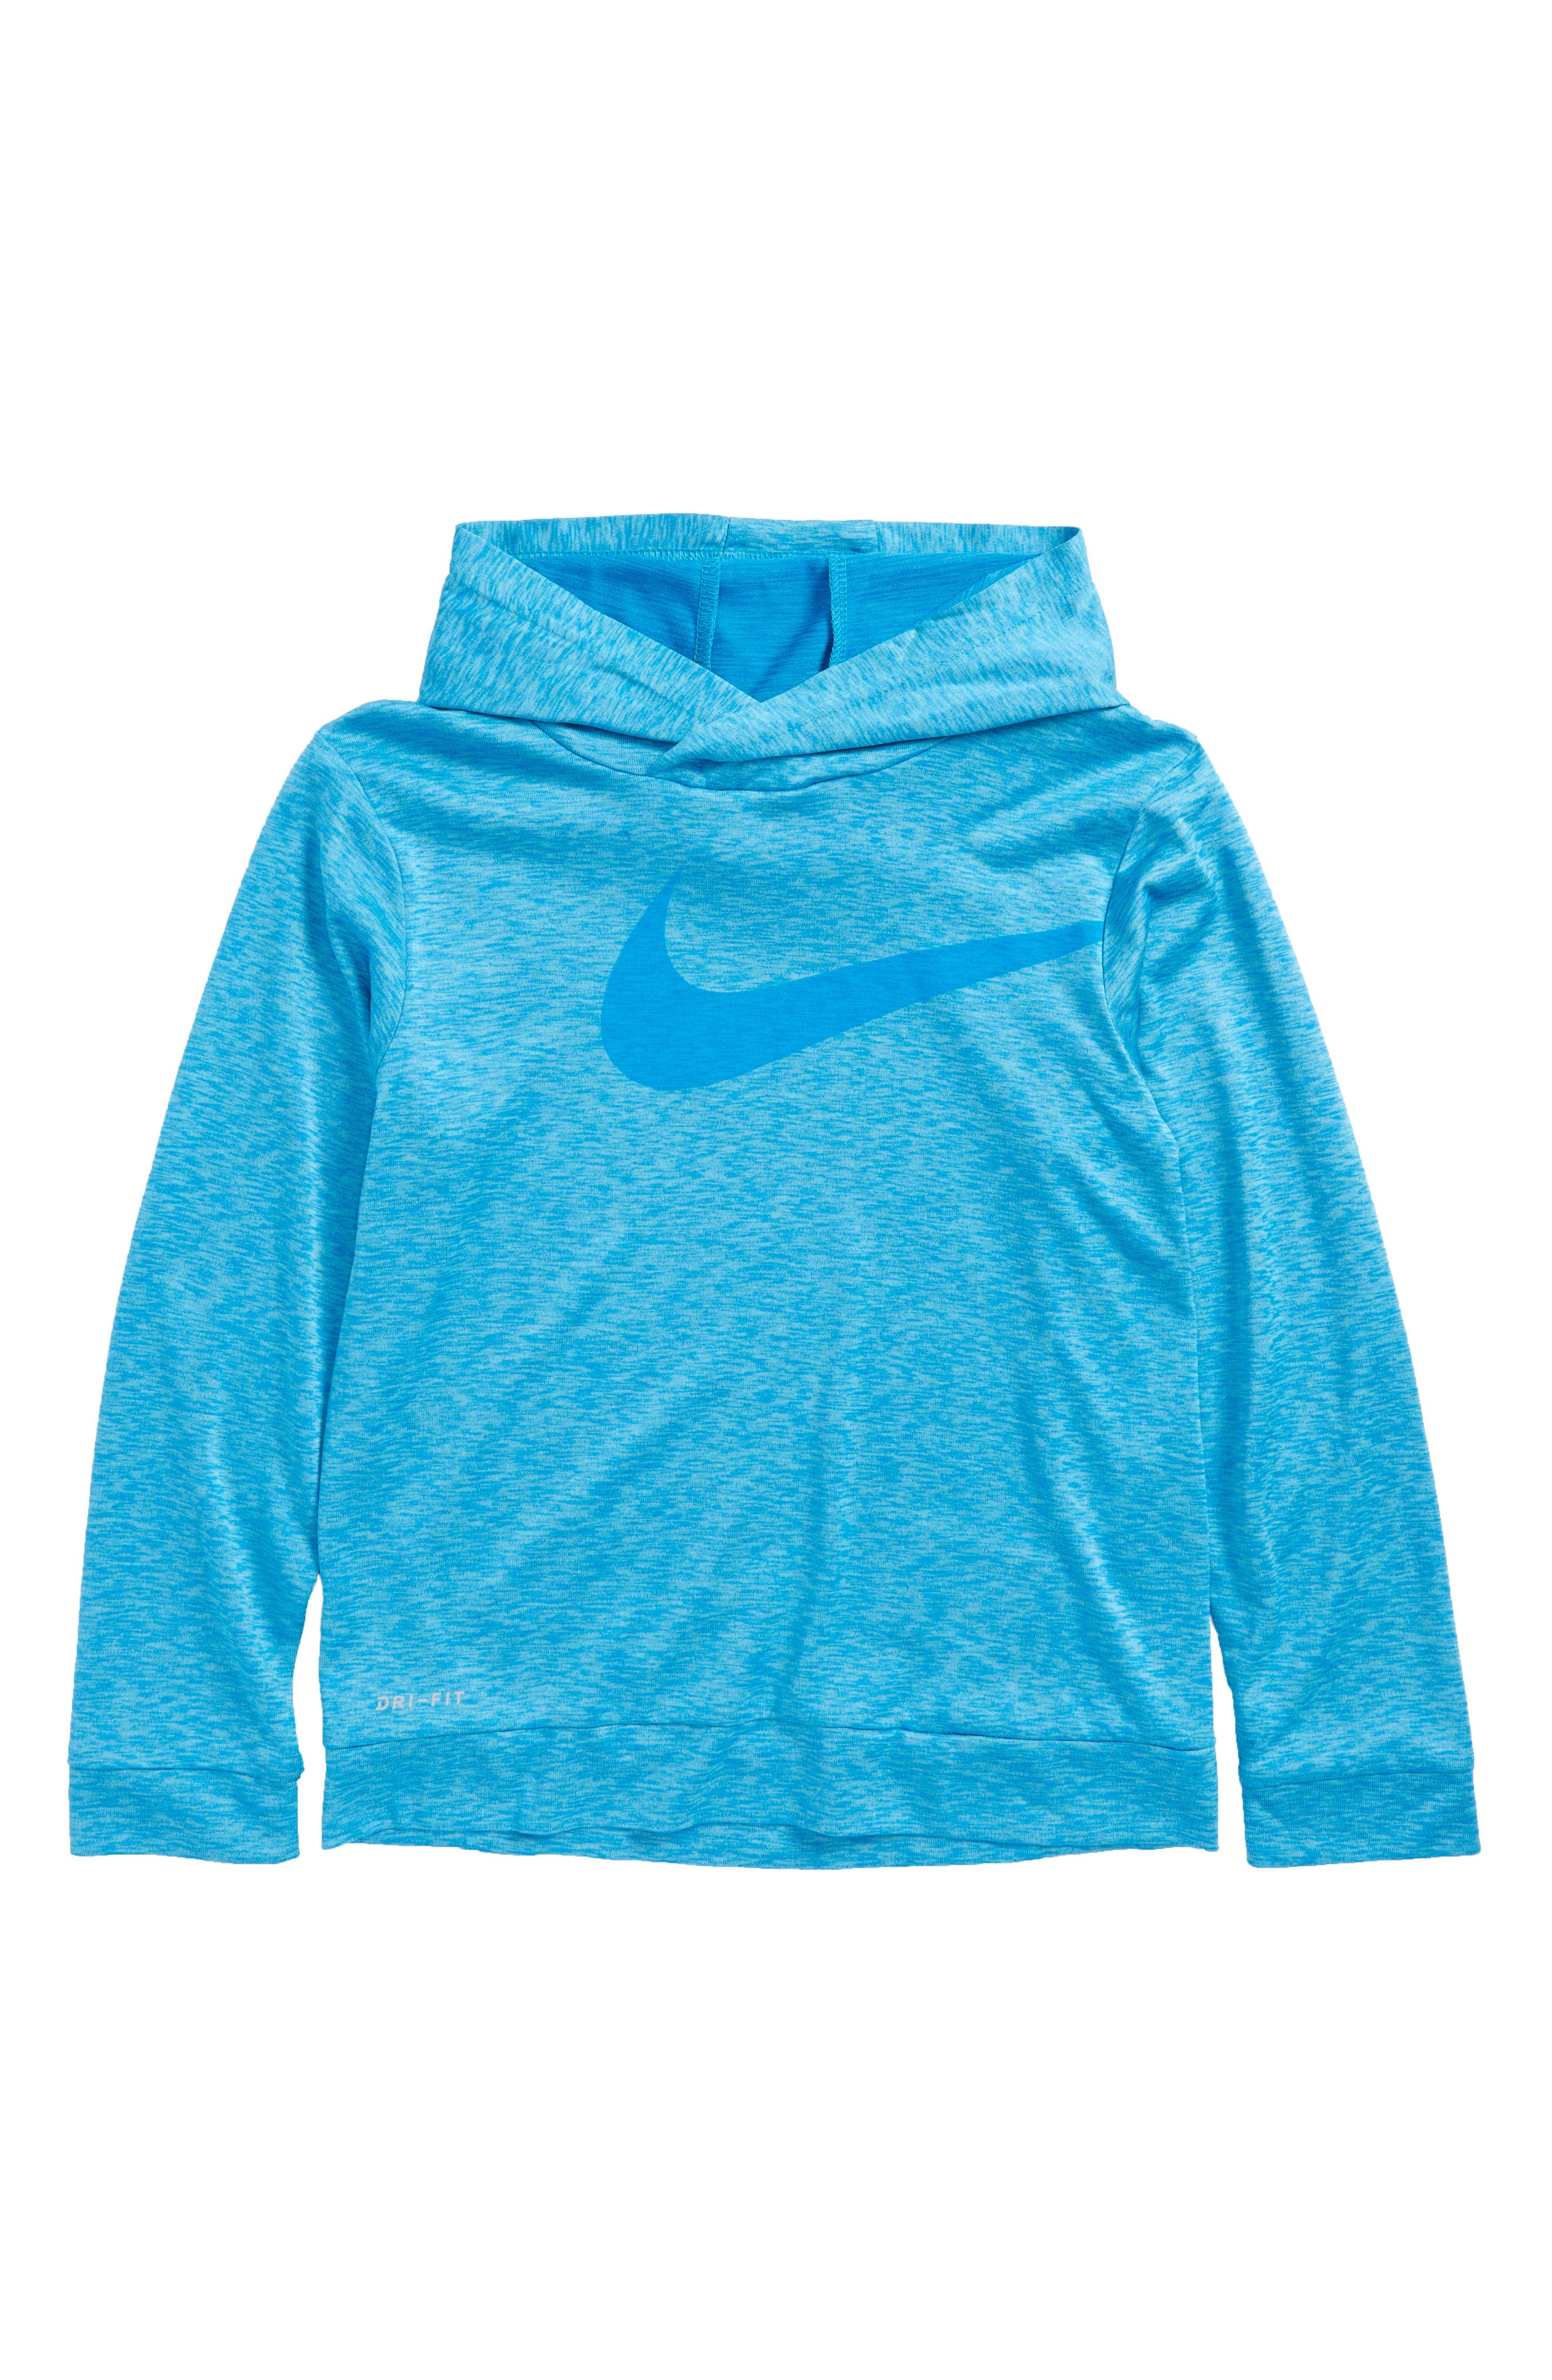 Swoosh Dri-FIT Hoodie,                             Main thumbnail 1, color,                             Light Photo Blue Heather